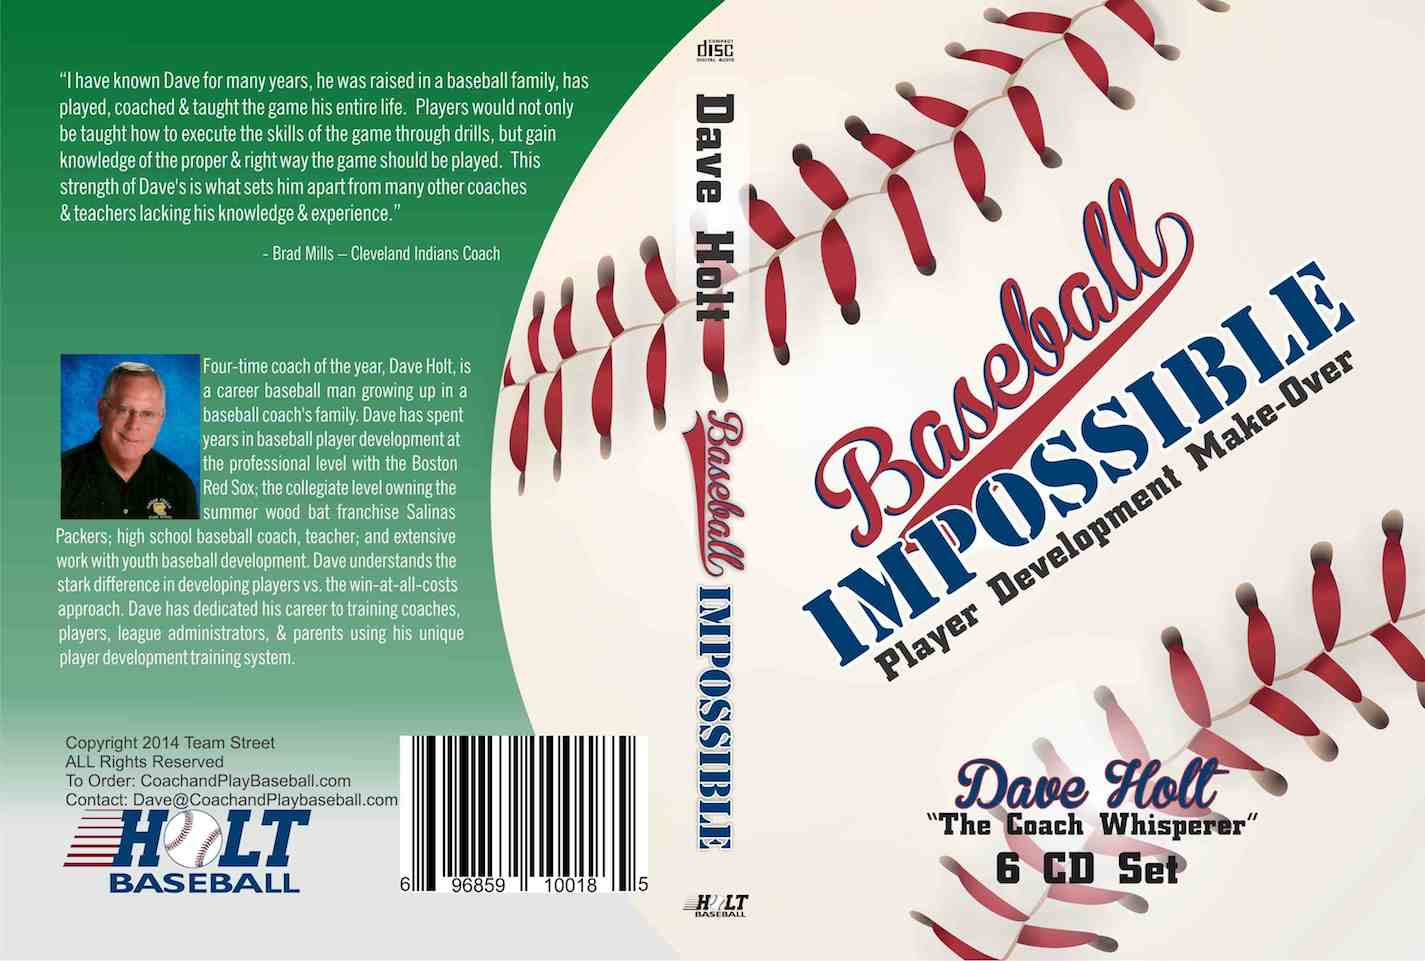 Baseball Impossible player development make over, coaching manual, tips and drills, practice planning, style, and approach.